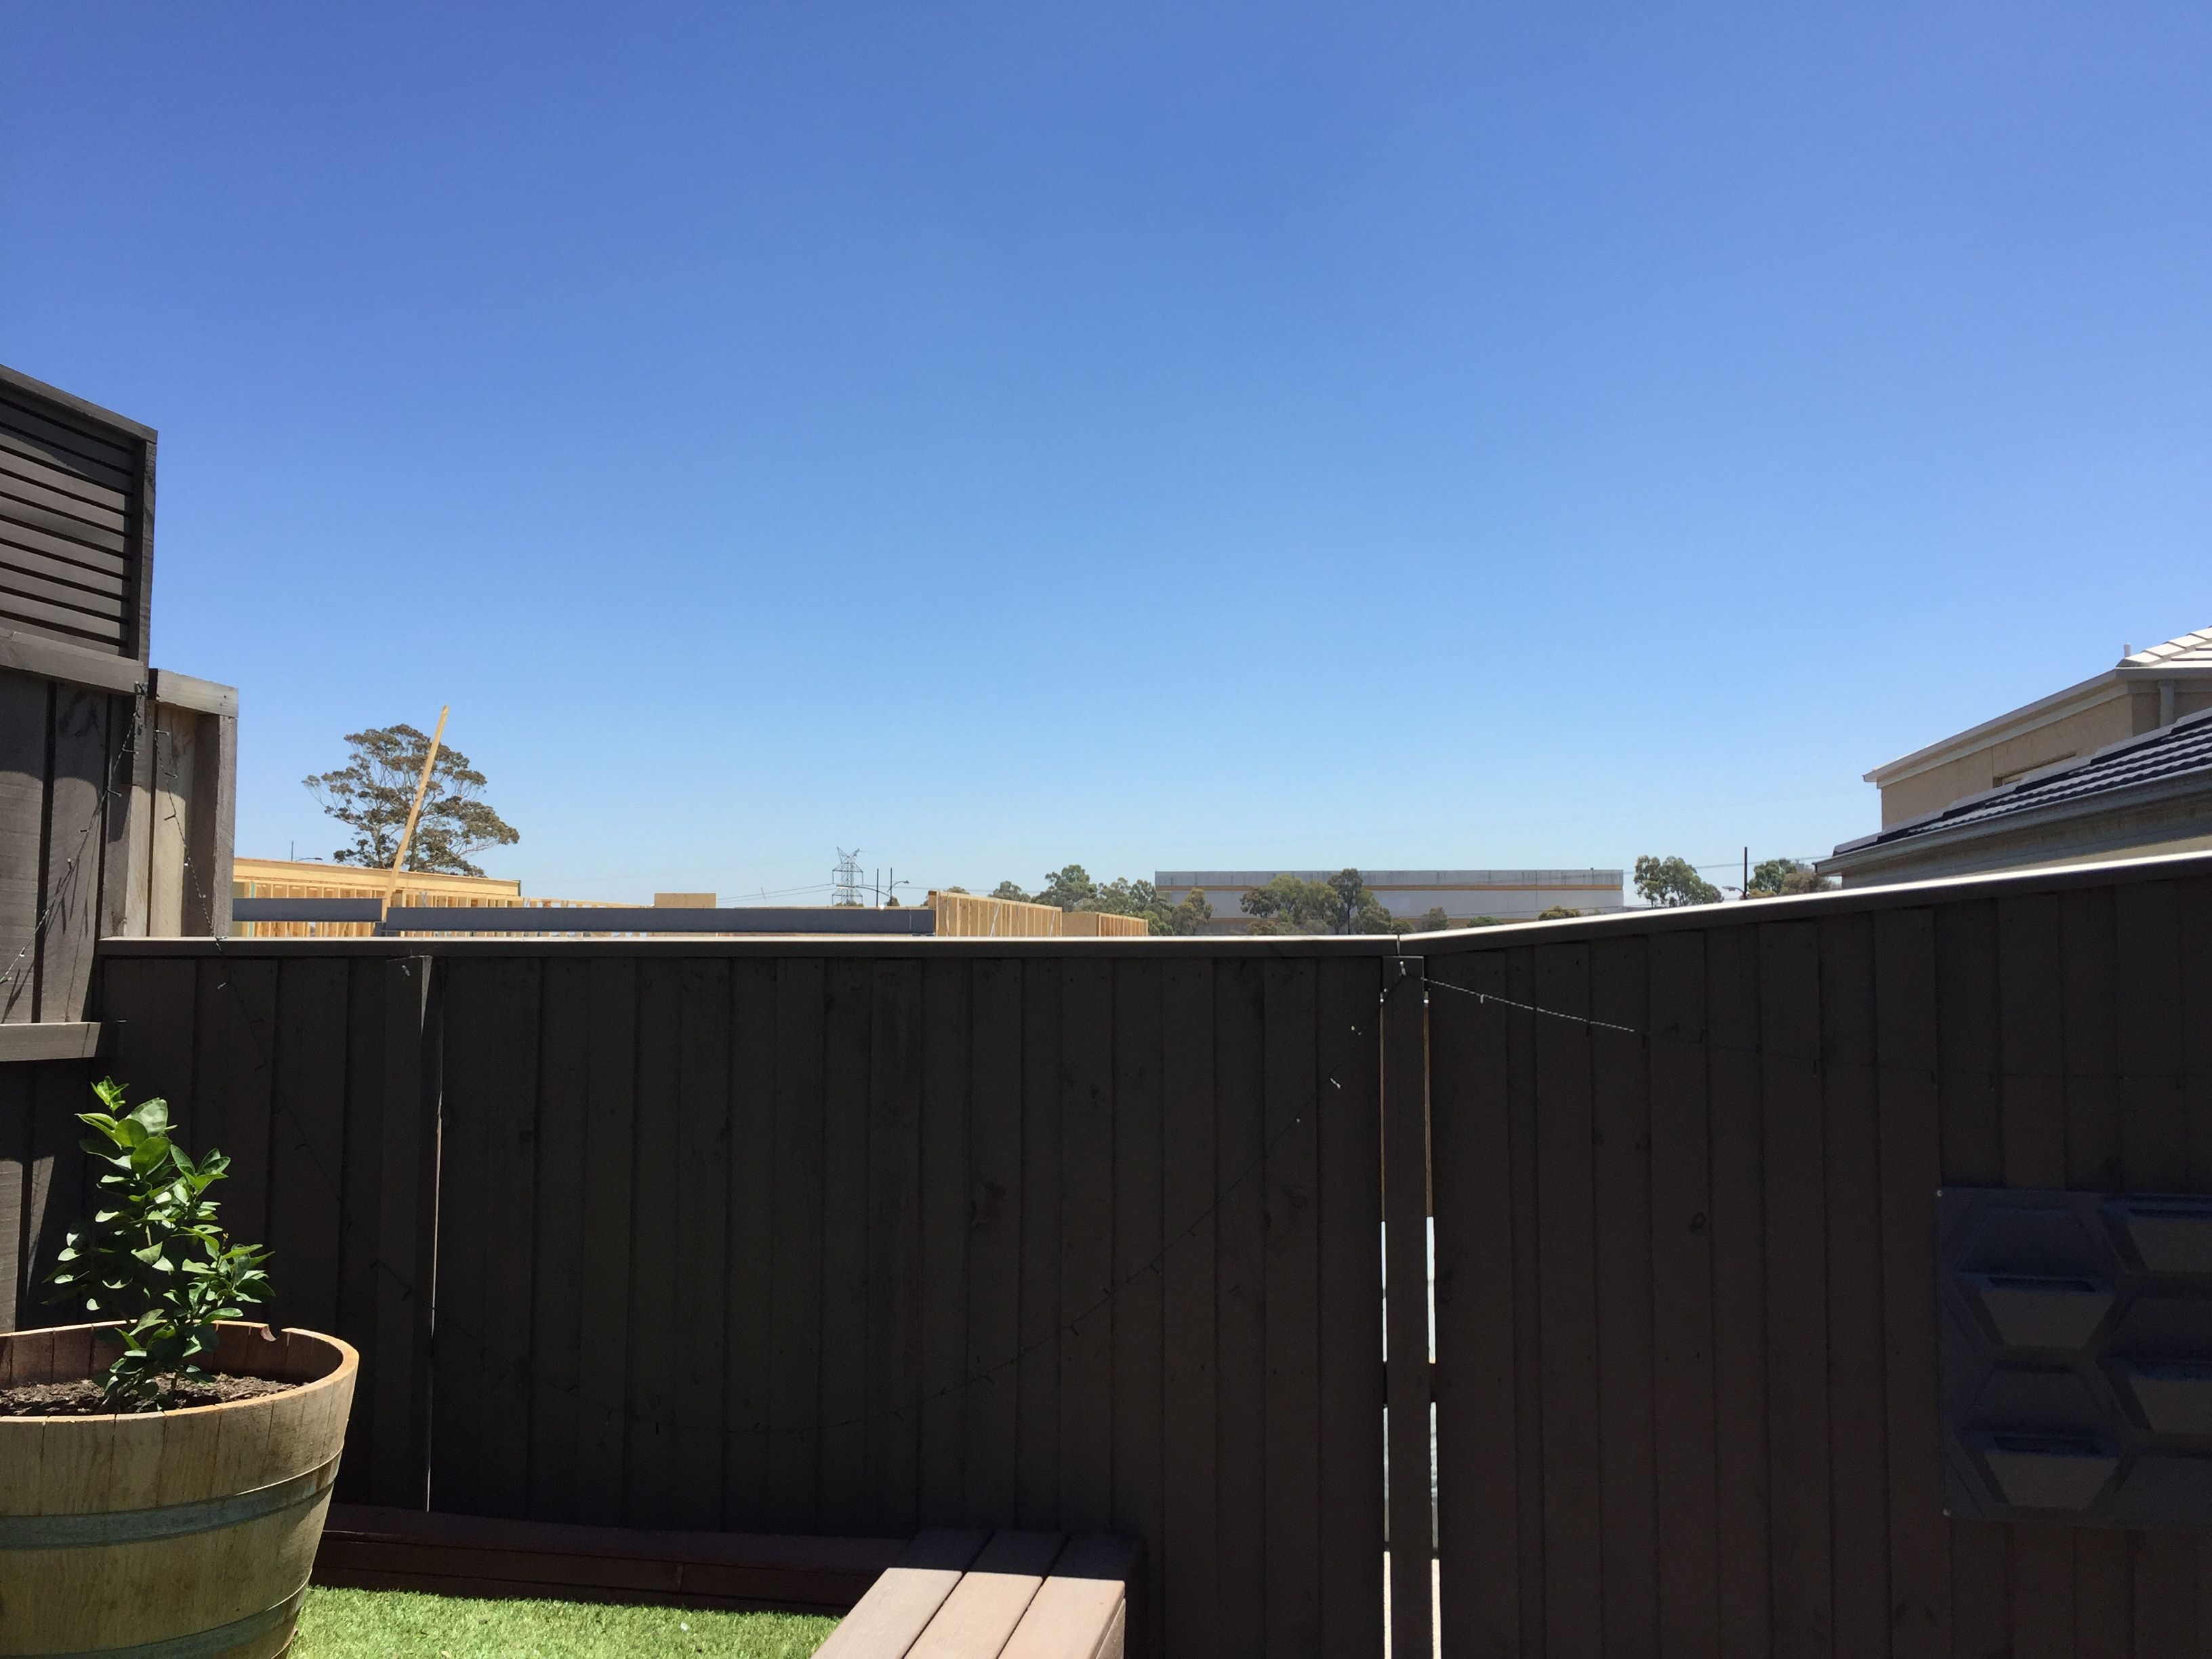 How to extend an angled fence?